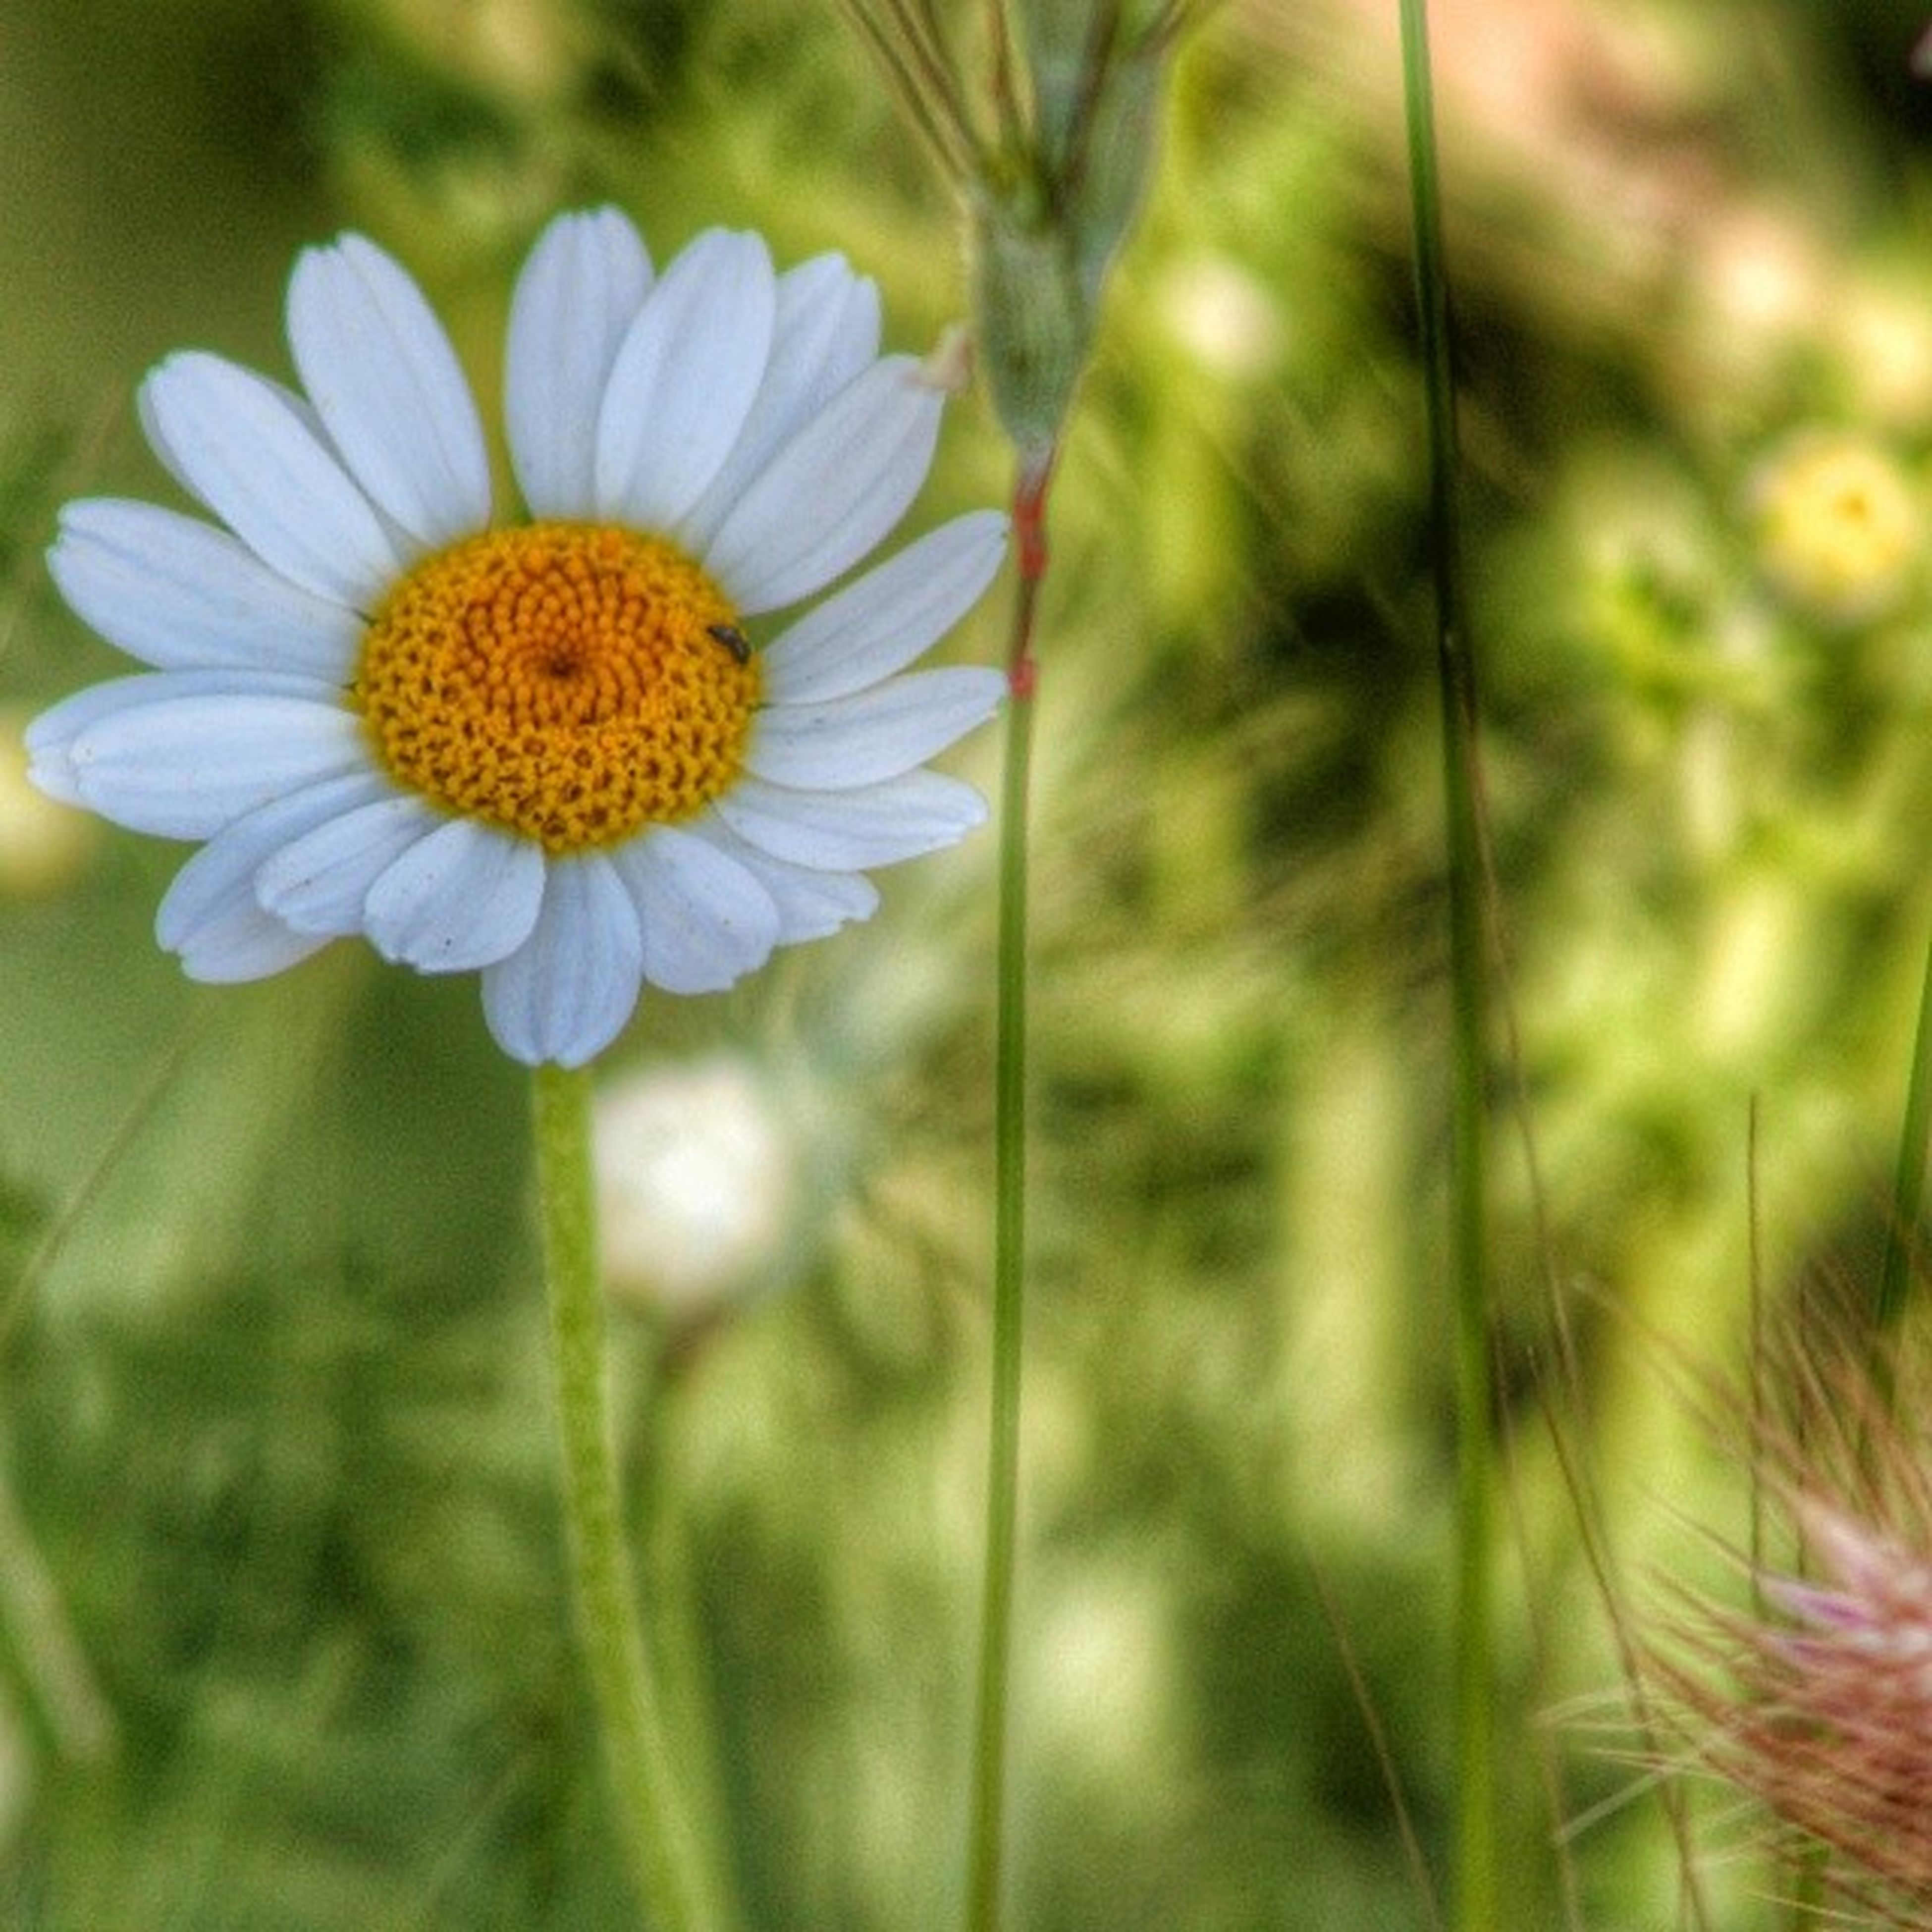 flower, freshness, fragility, petal, flower head, growth, beauty in nature, daisy, yellow, blooming, focus on foreground, pollen, close-up, plant, nature, stem, white color, in bloom, single flower, selective focus